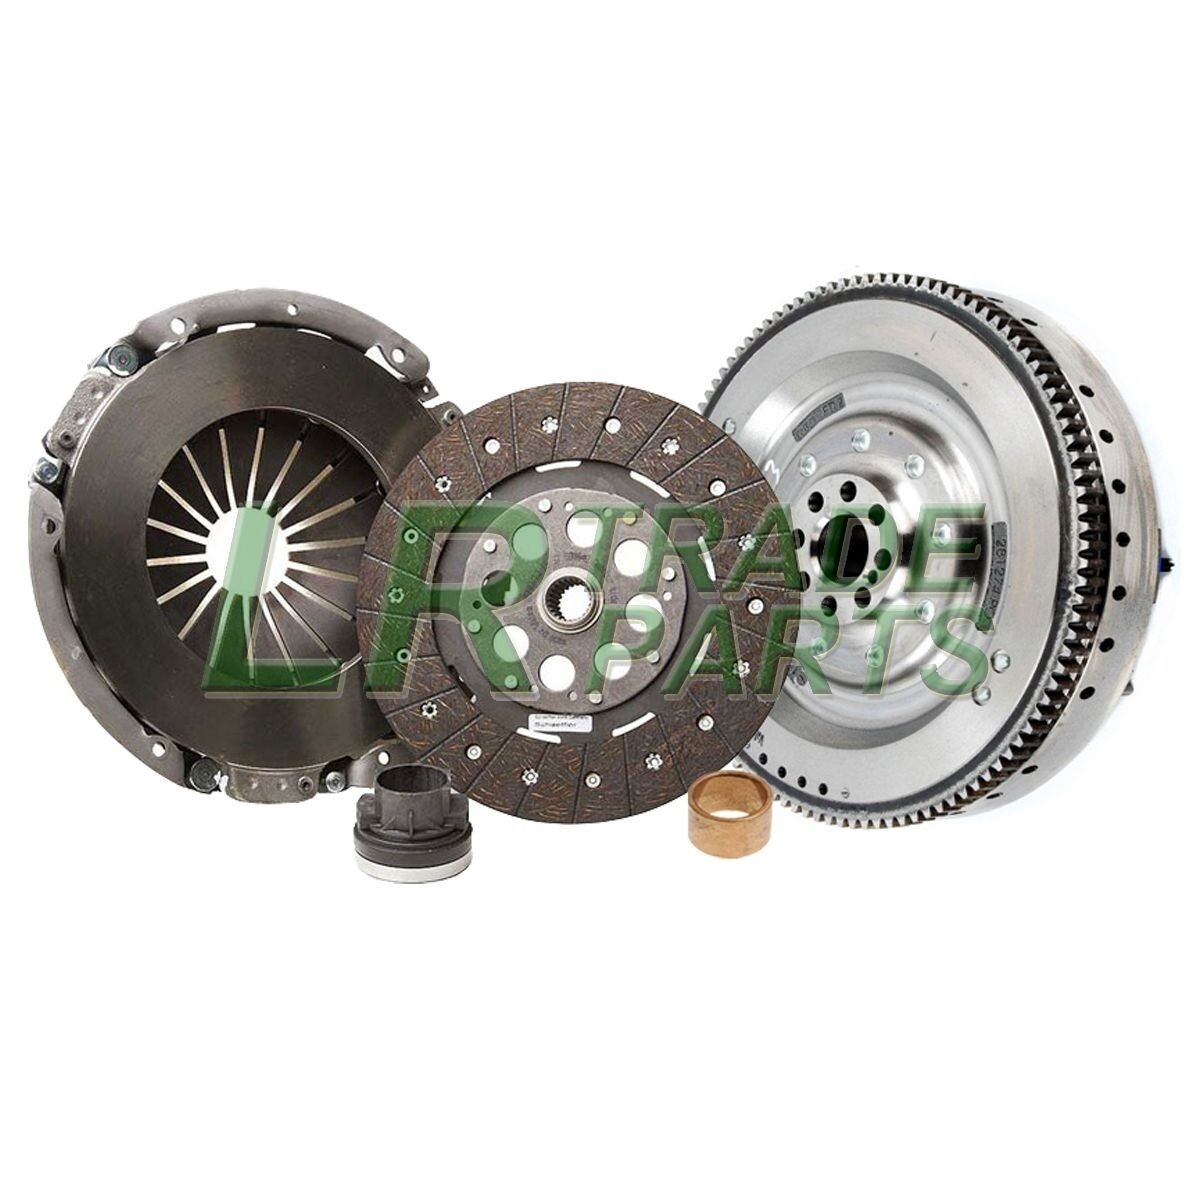 Land Rover Defender Discovery 2 Td5 New Oem Clutch Flywheel Kit 1 Of 1free Shipping